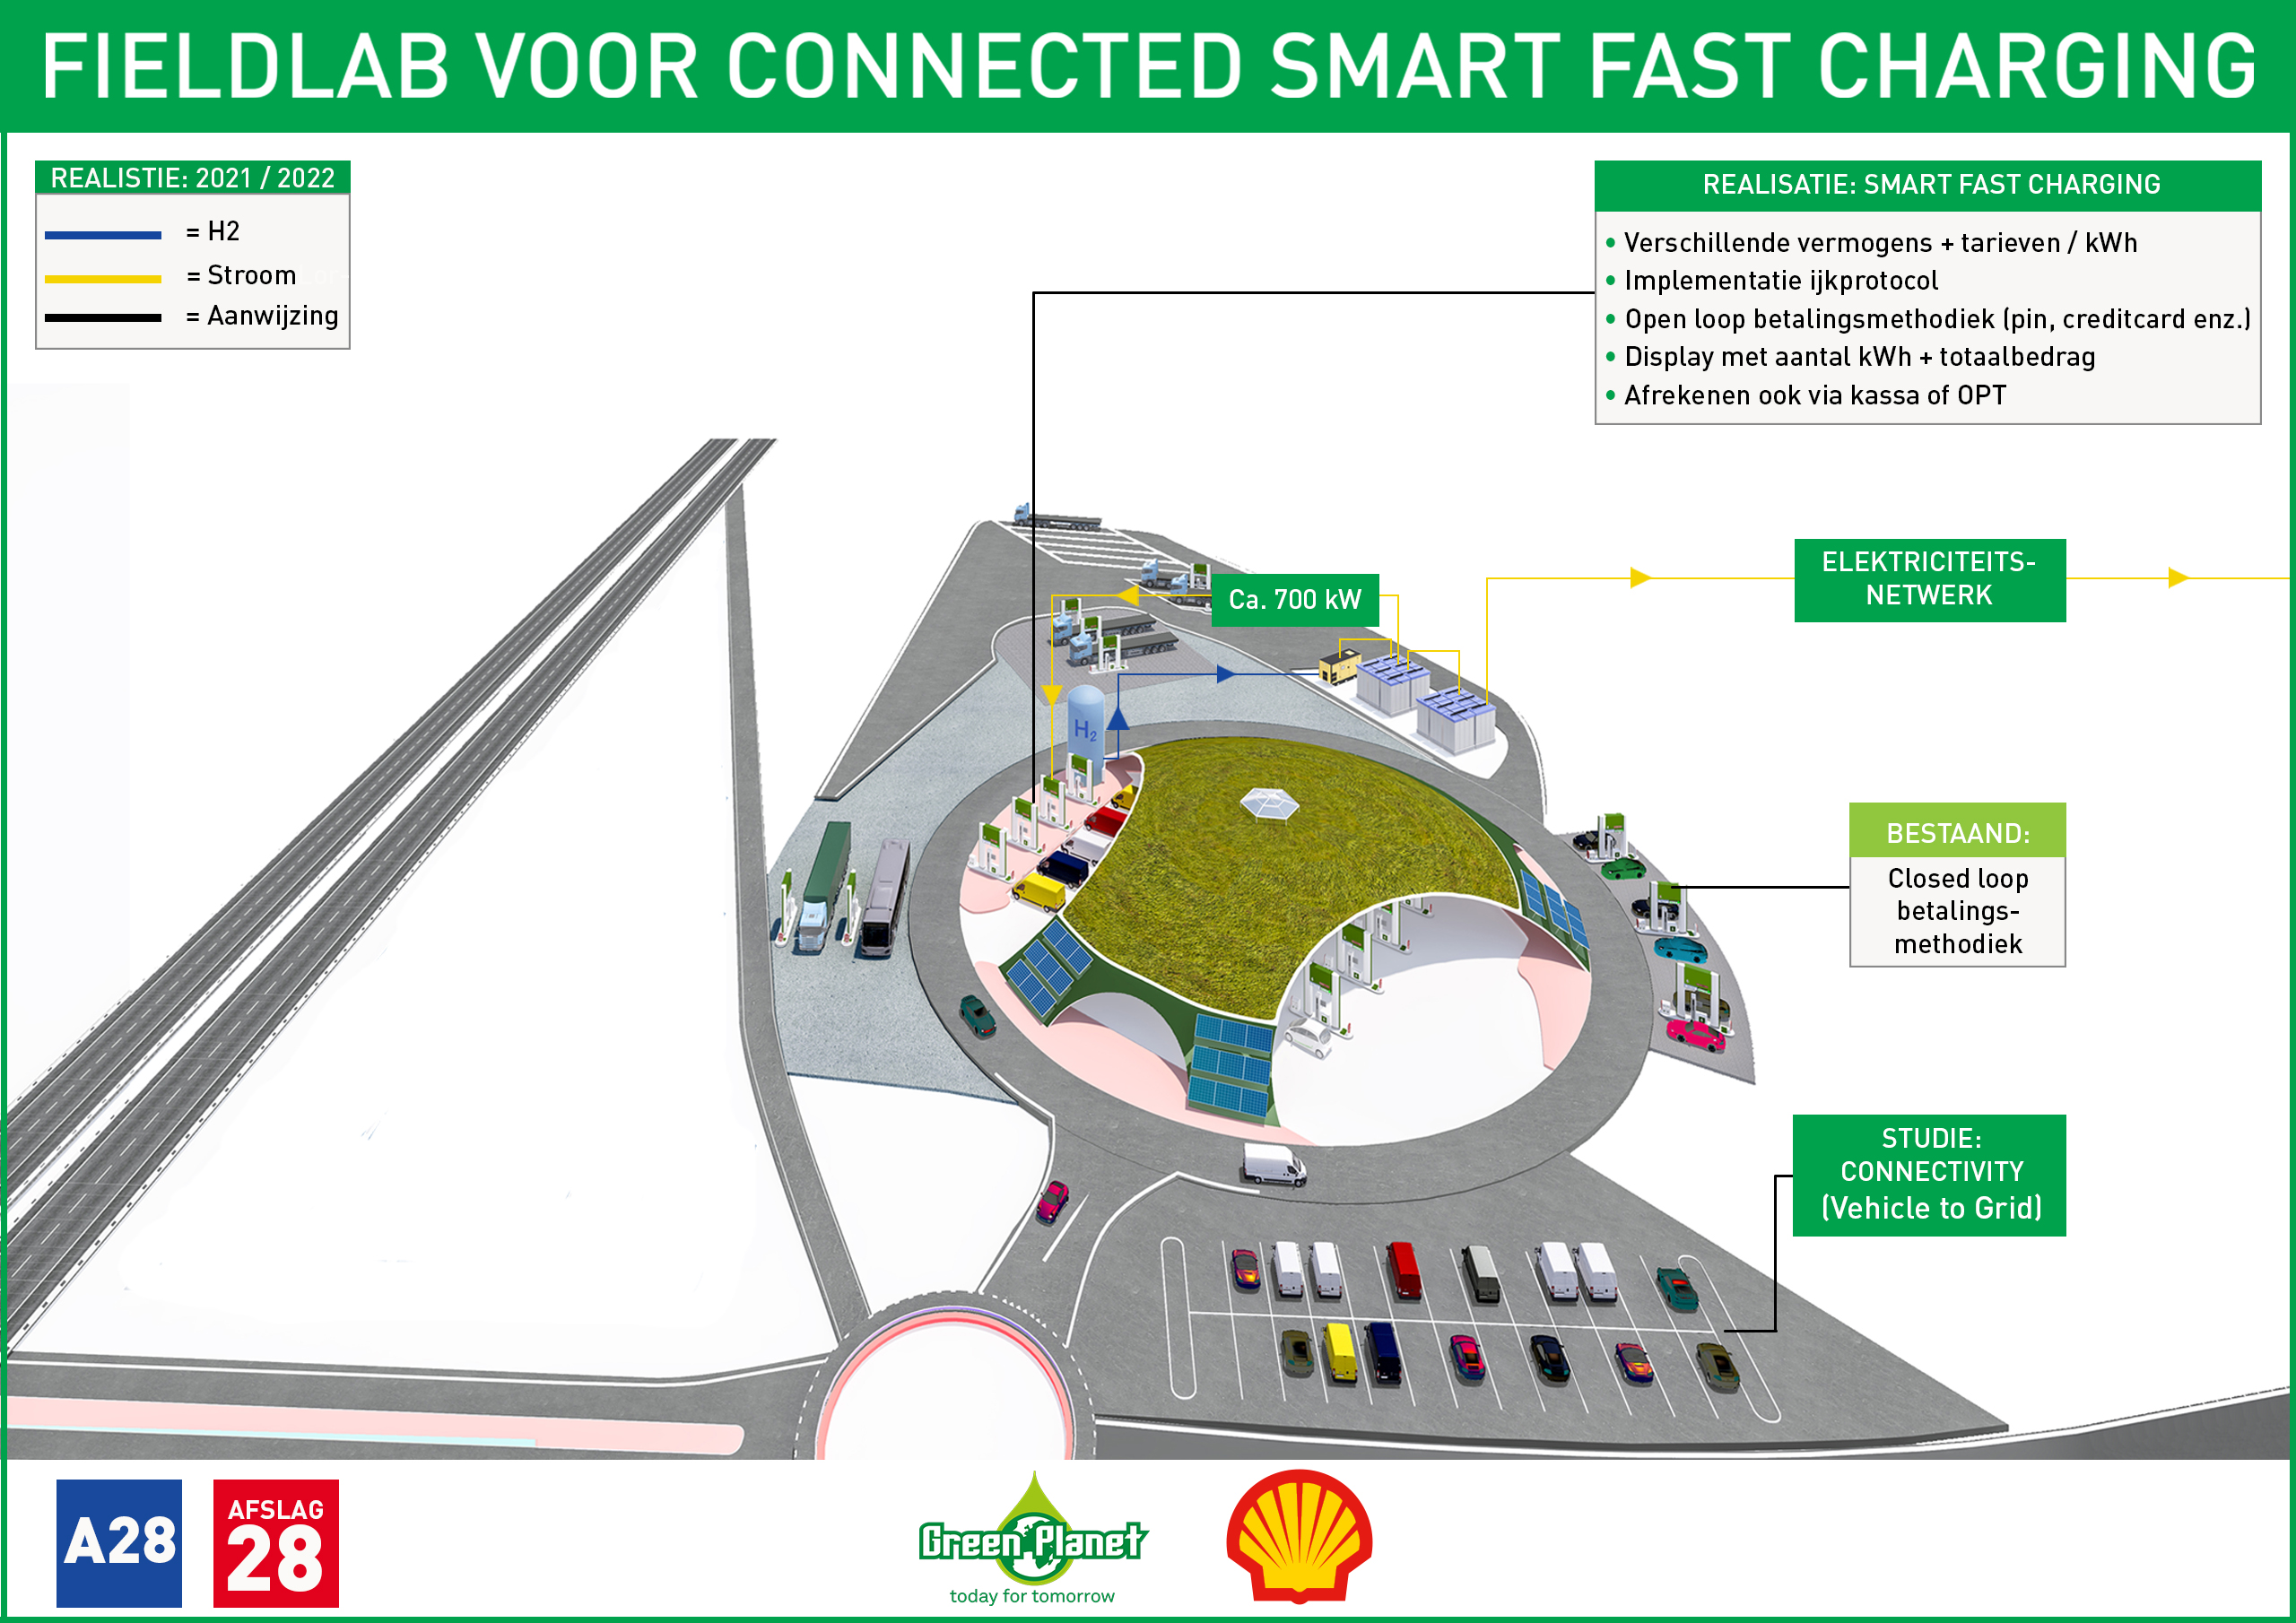 Fieldlab for Connected Smart Fast Charging